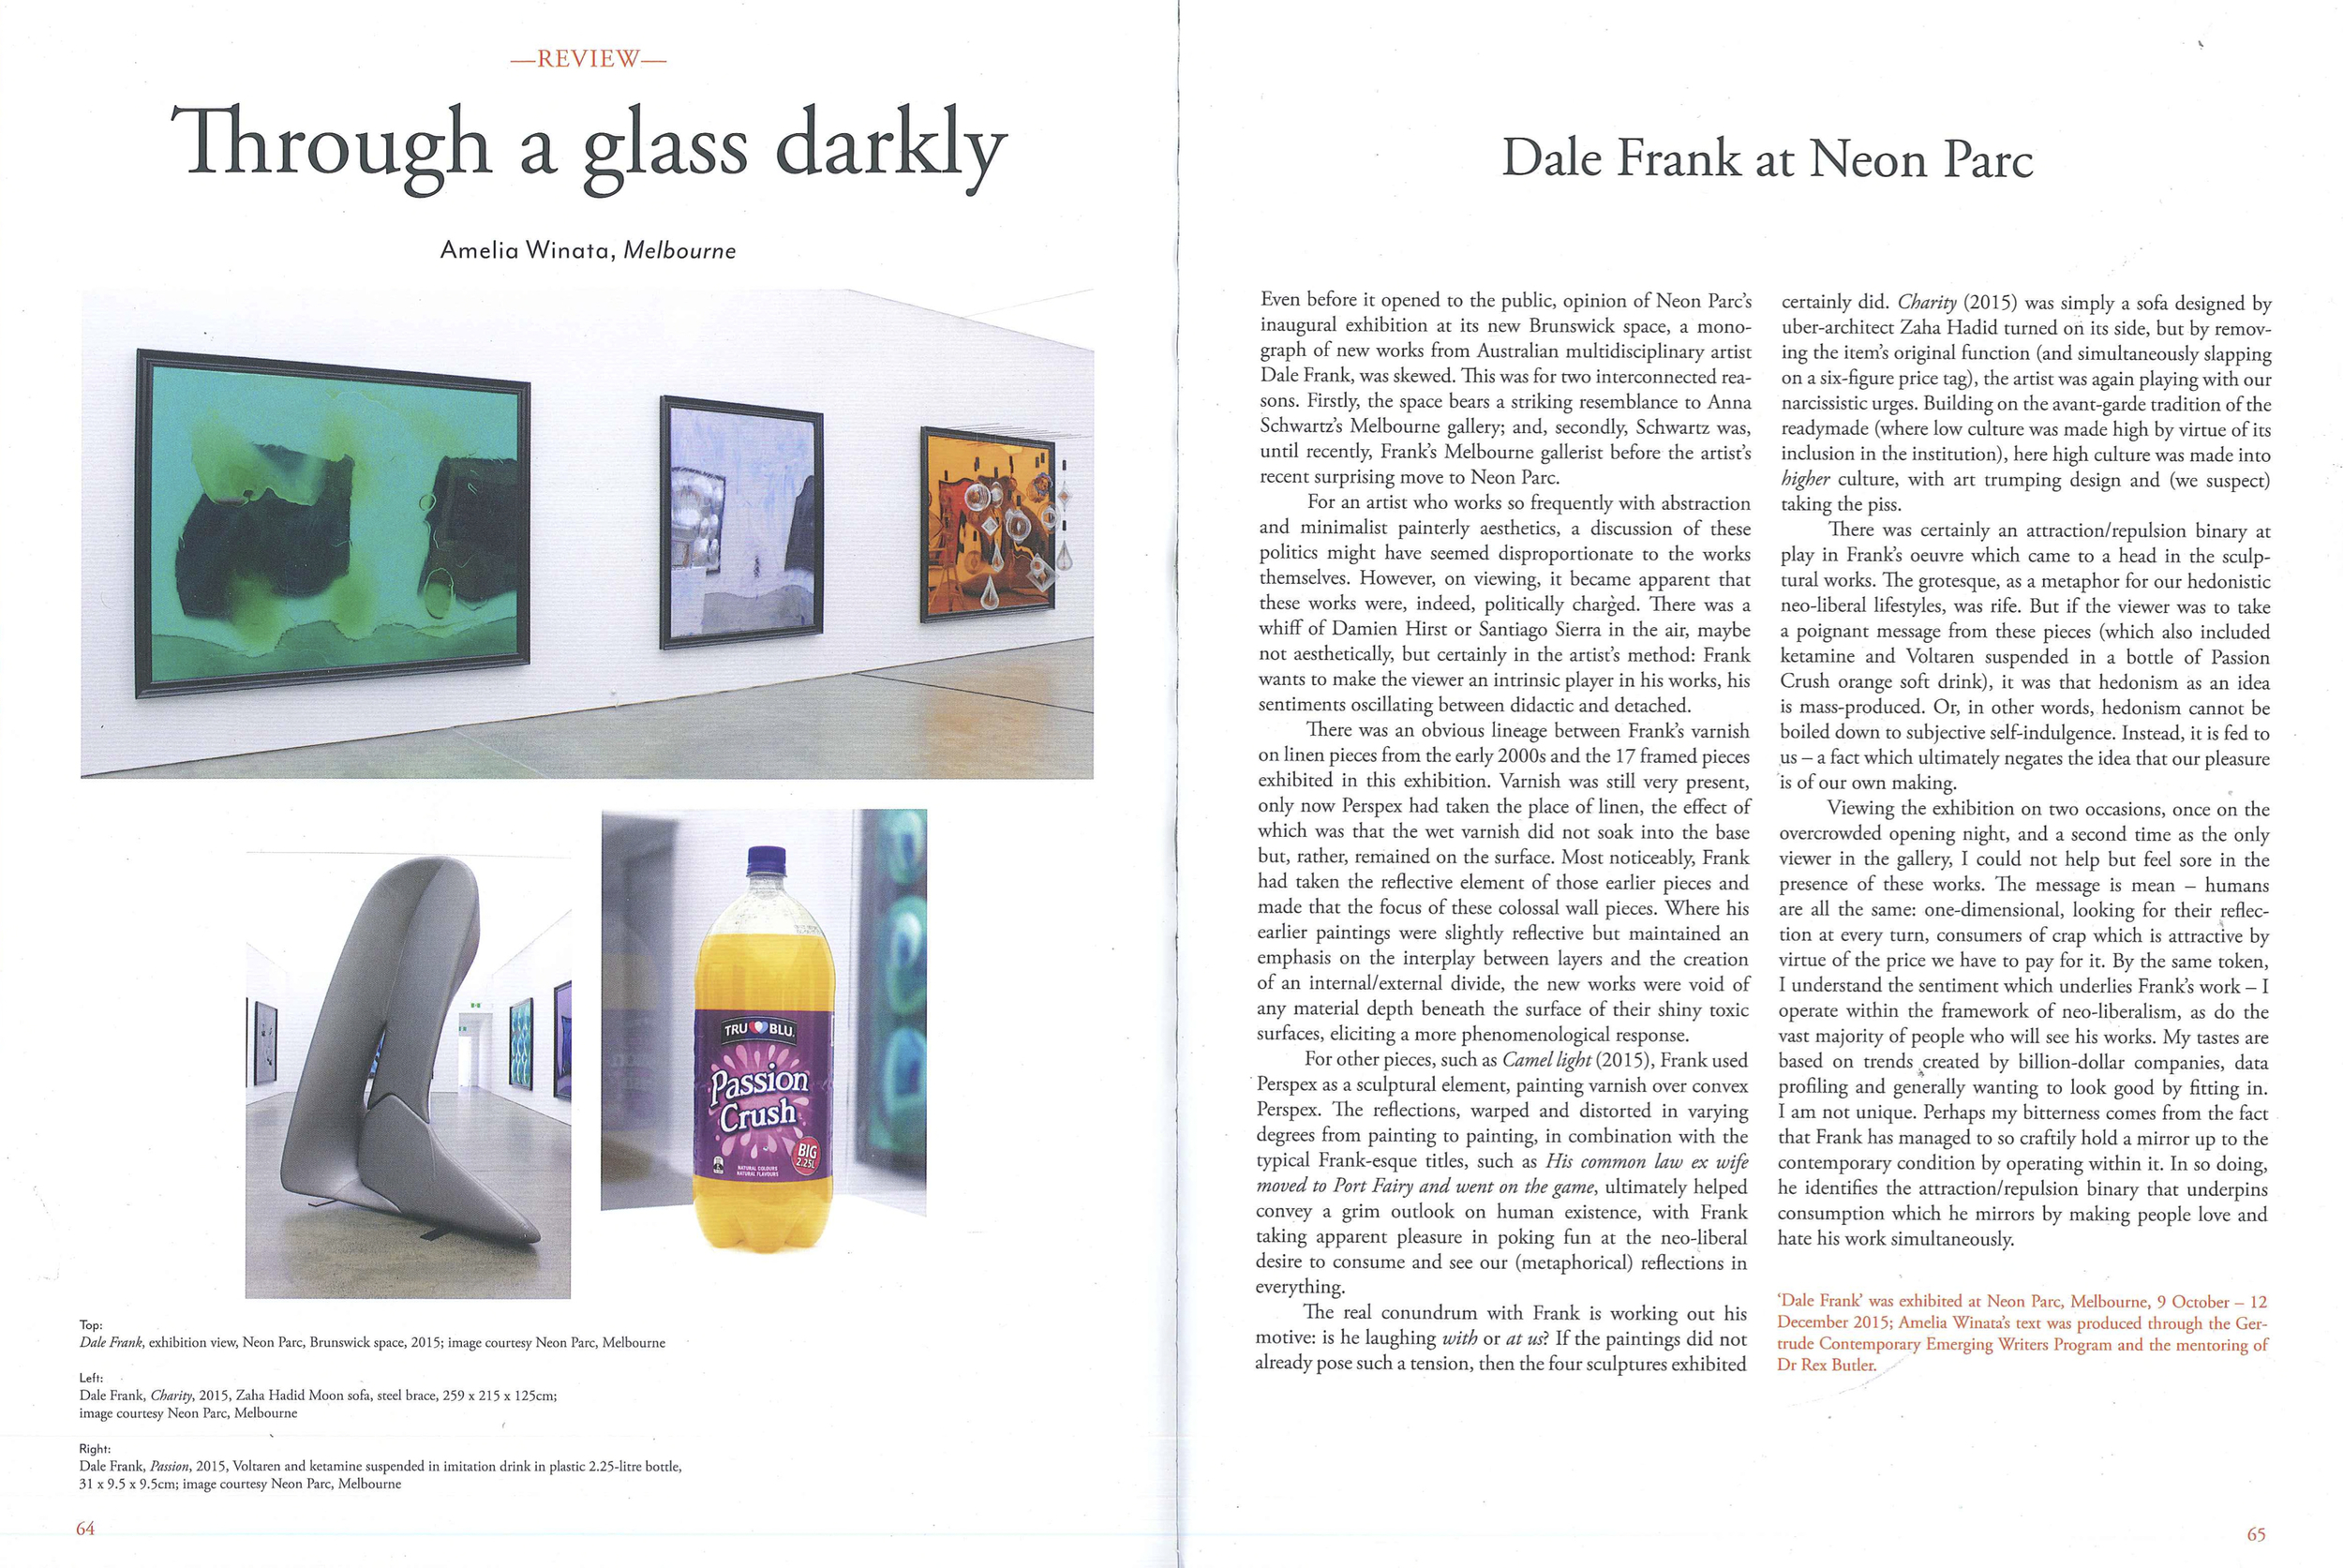 Through a glass darkly: Dale Frank at Neon Parc. Published by Art Monthly Australia, March 2016, pp. 64-65. Copyright    Amelia Winata and Art Monthly Australia.